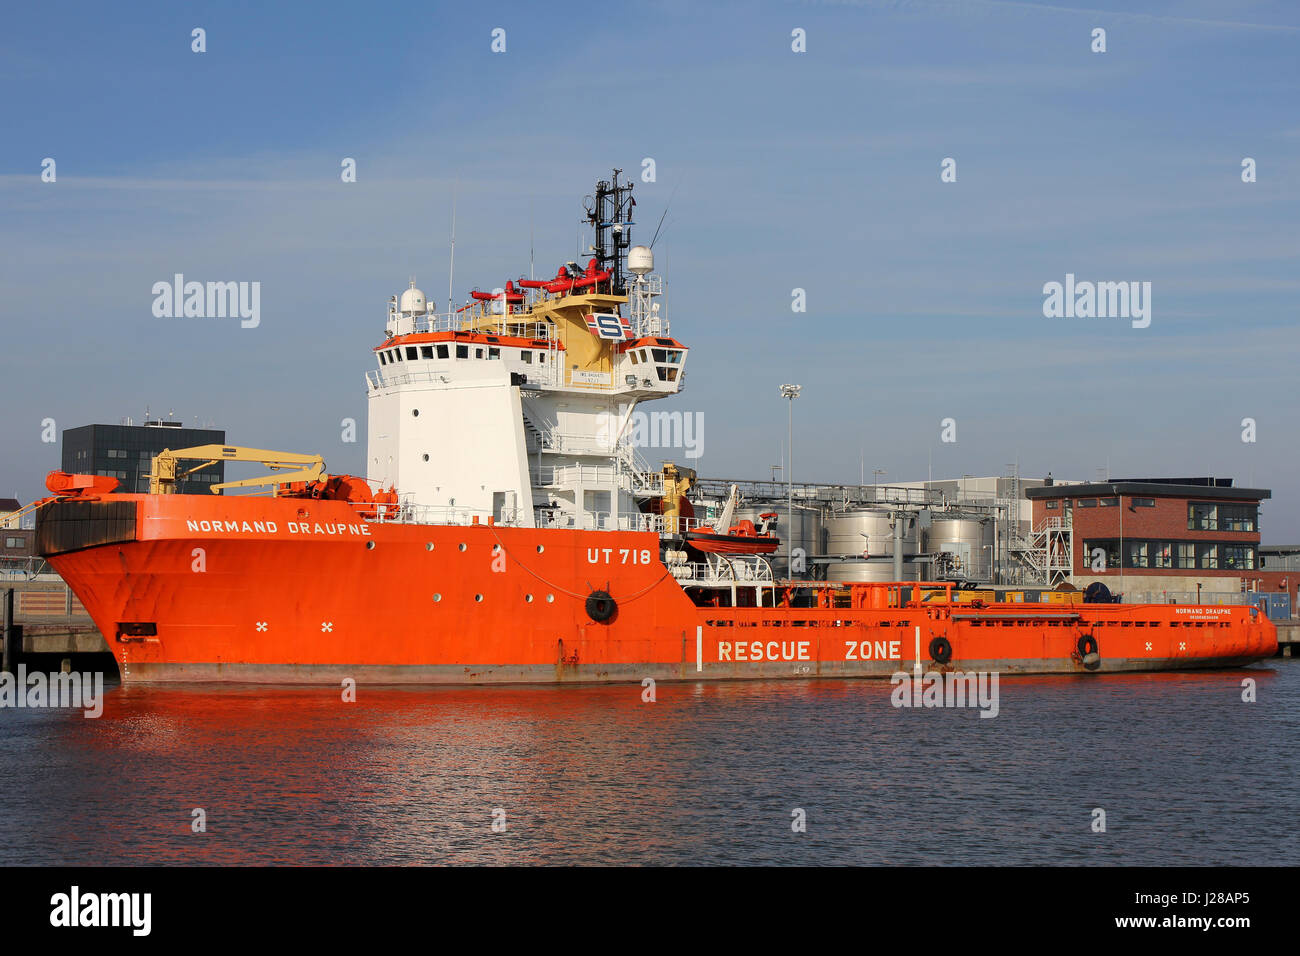 NORMAND DRAUPNE operated by Solstad Offshore in the port of Cuxhaven. This is an anchor handling tug and supply Stock Photo